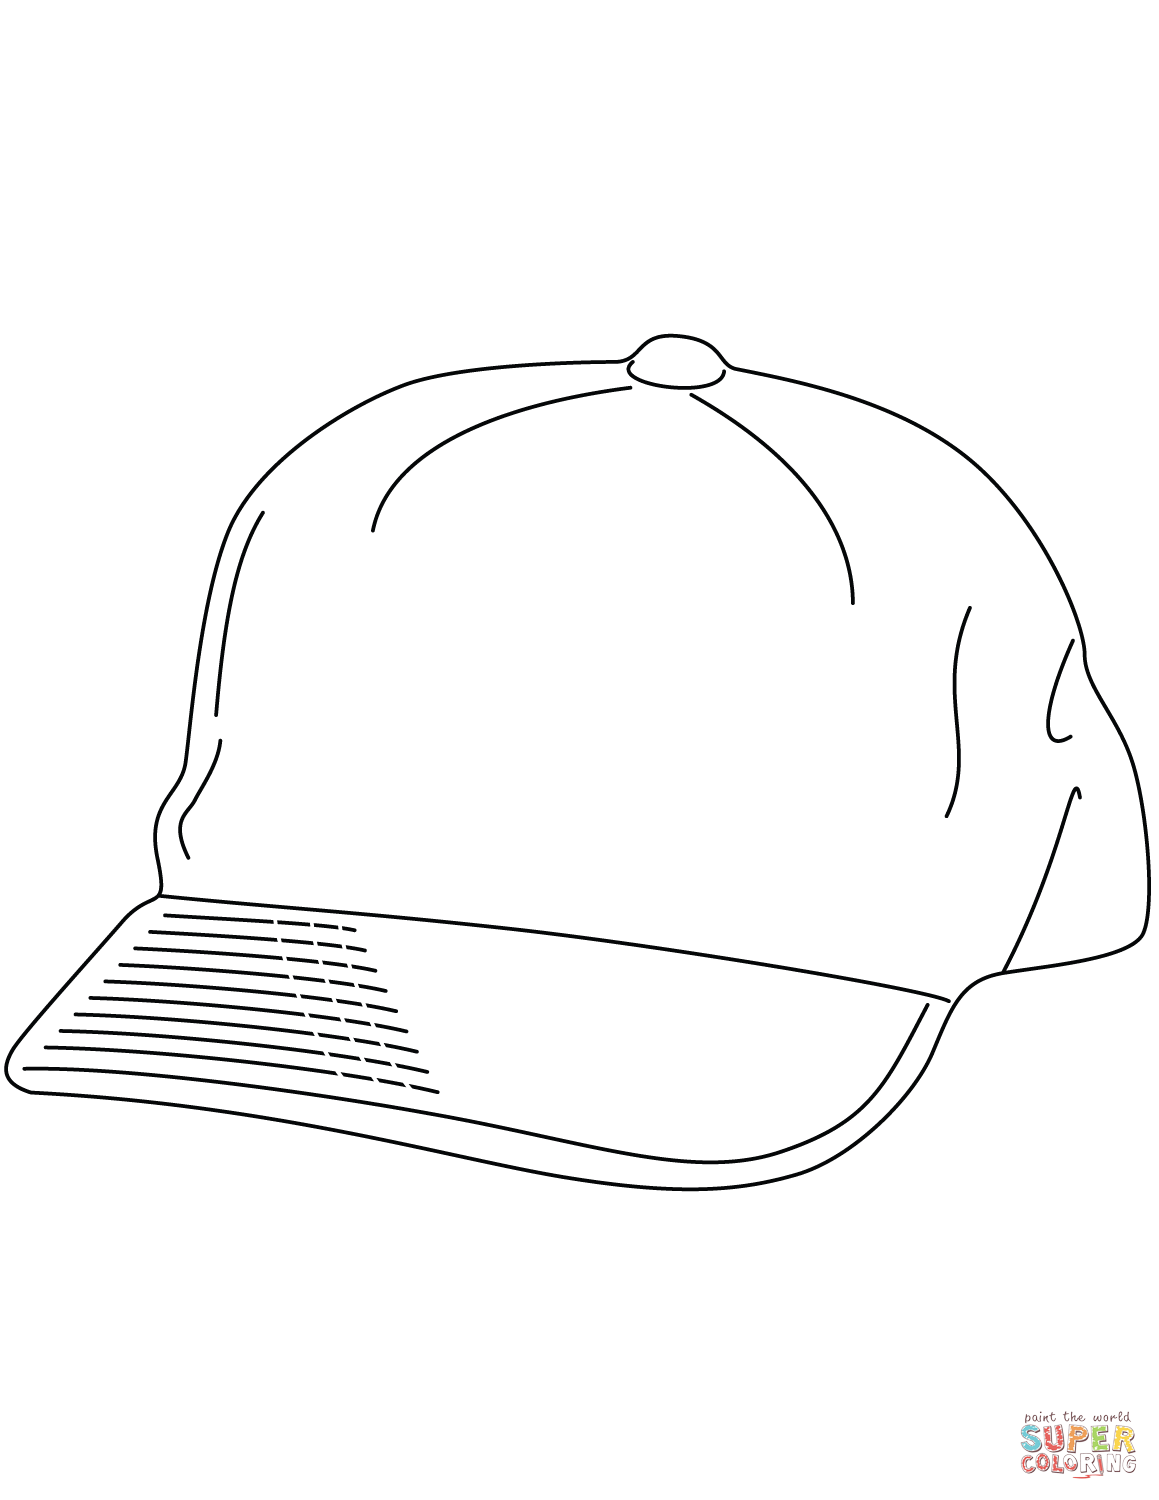 how to make hats on roblox 2018